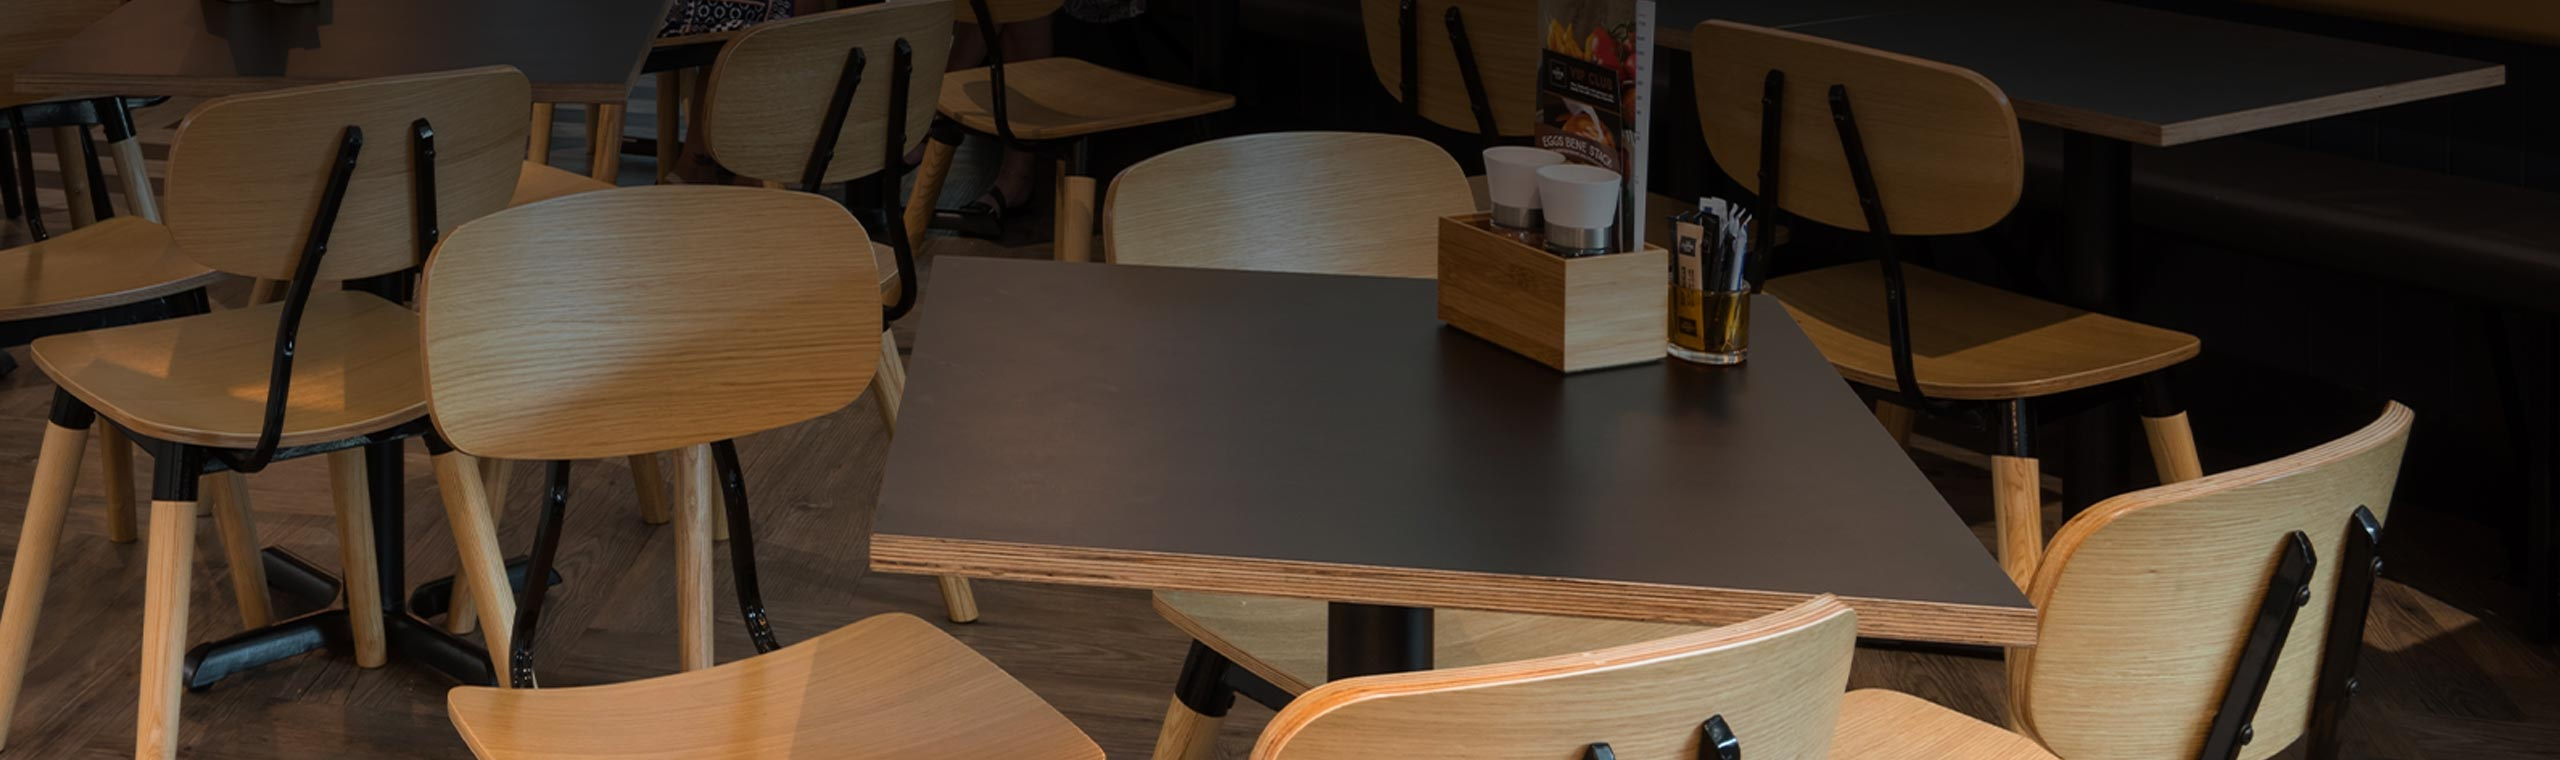 Hospitality Table Tops